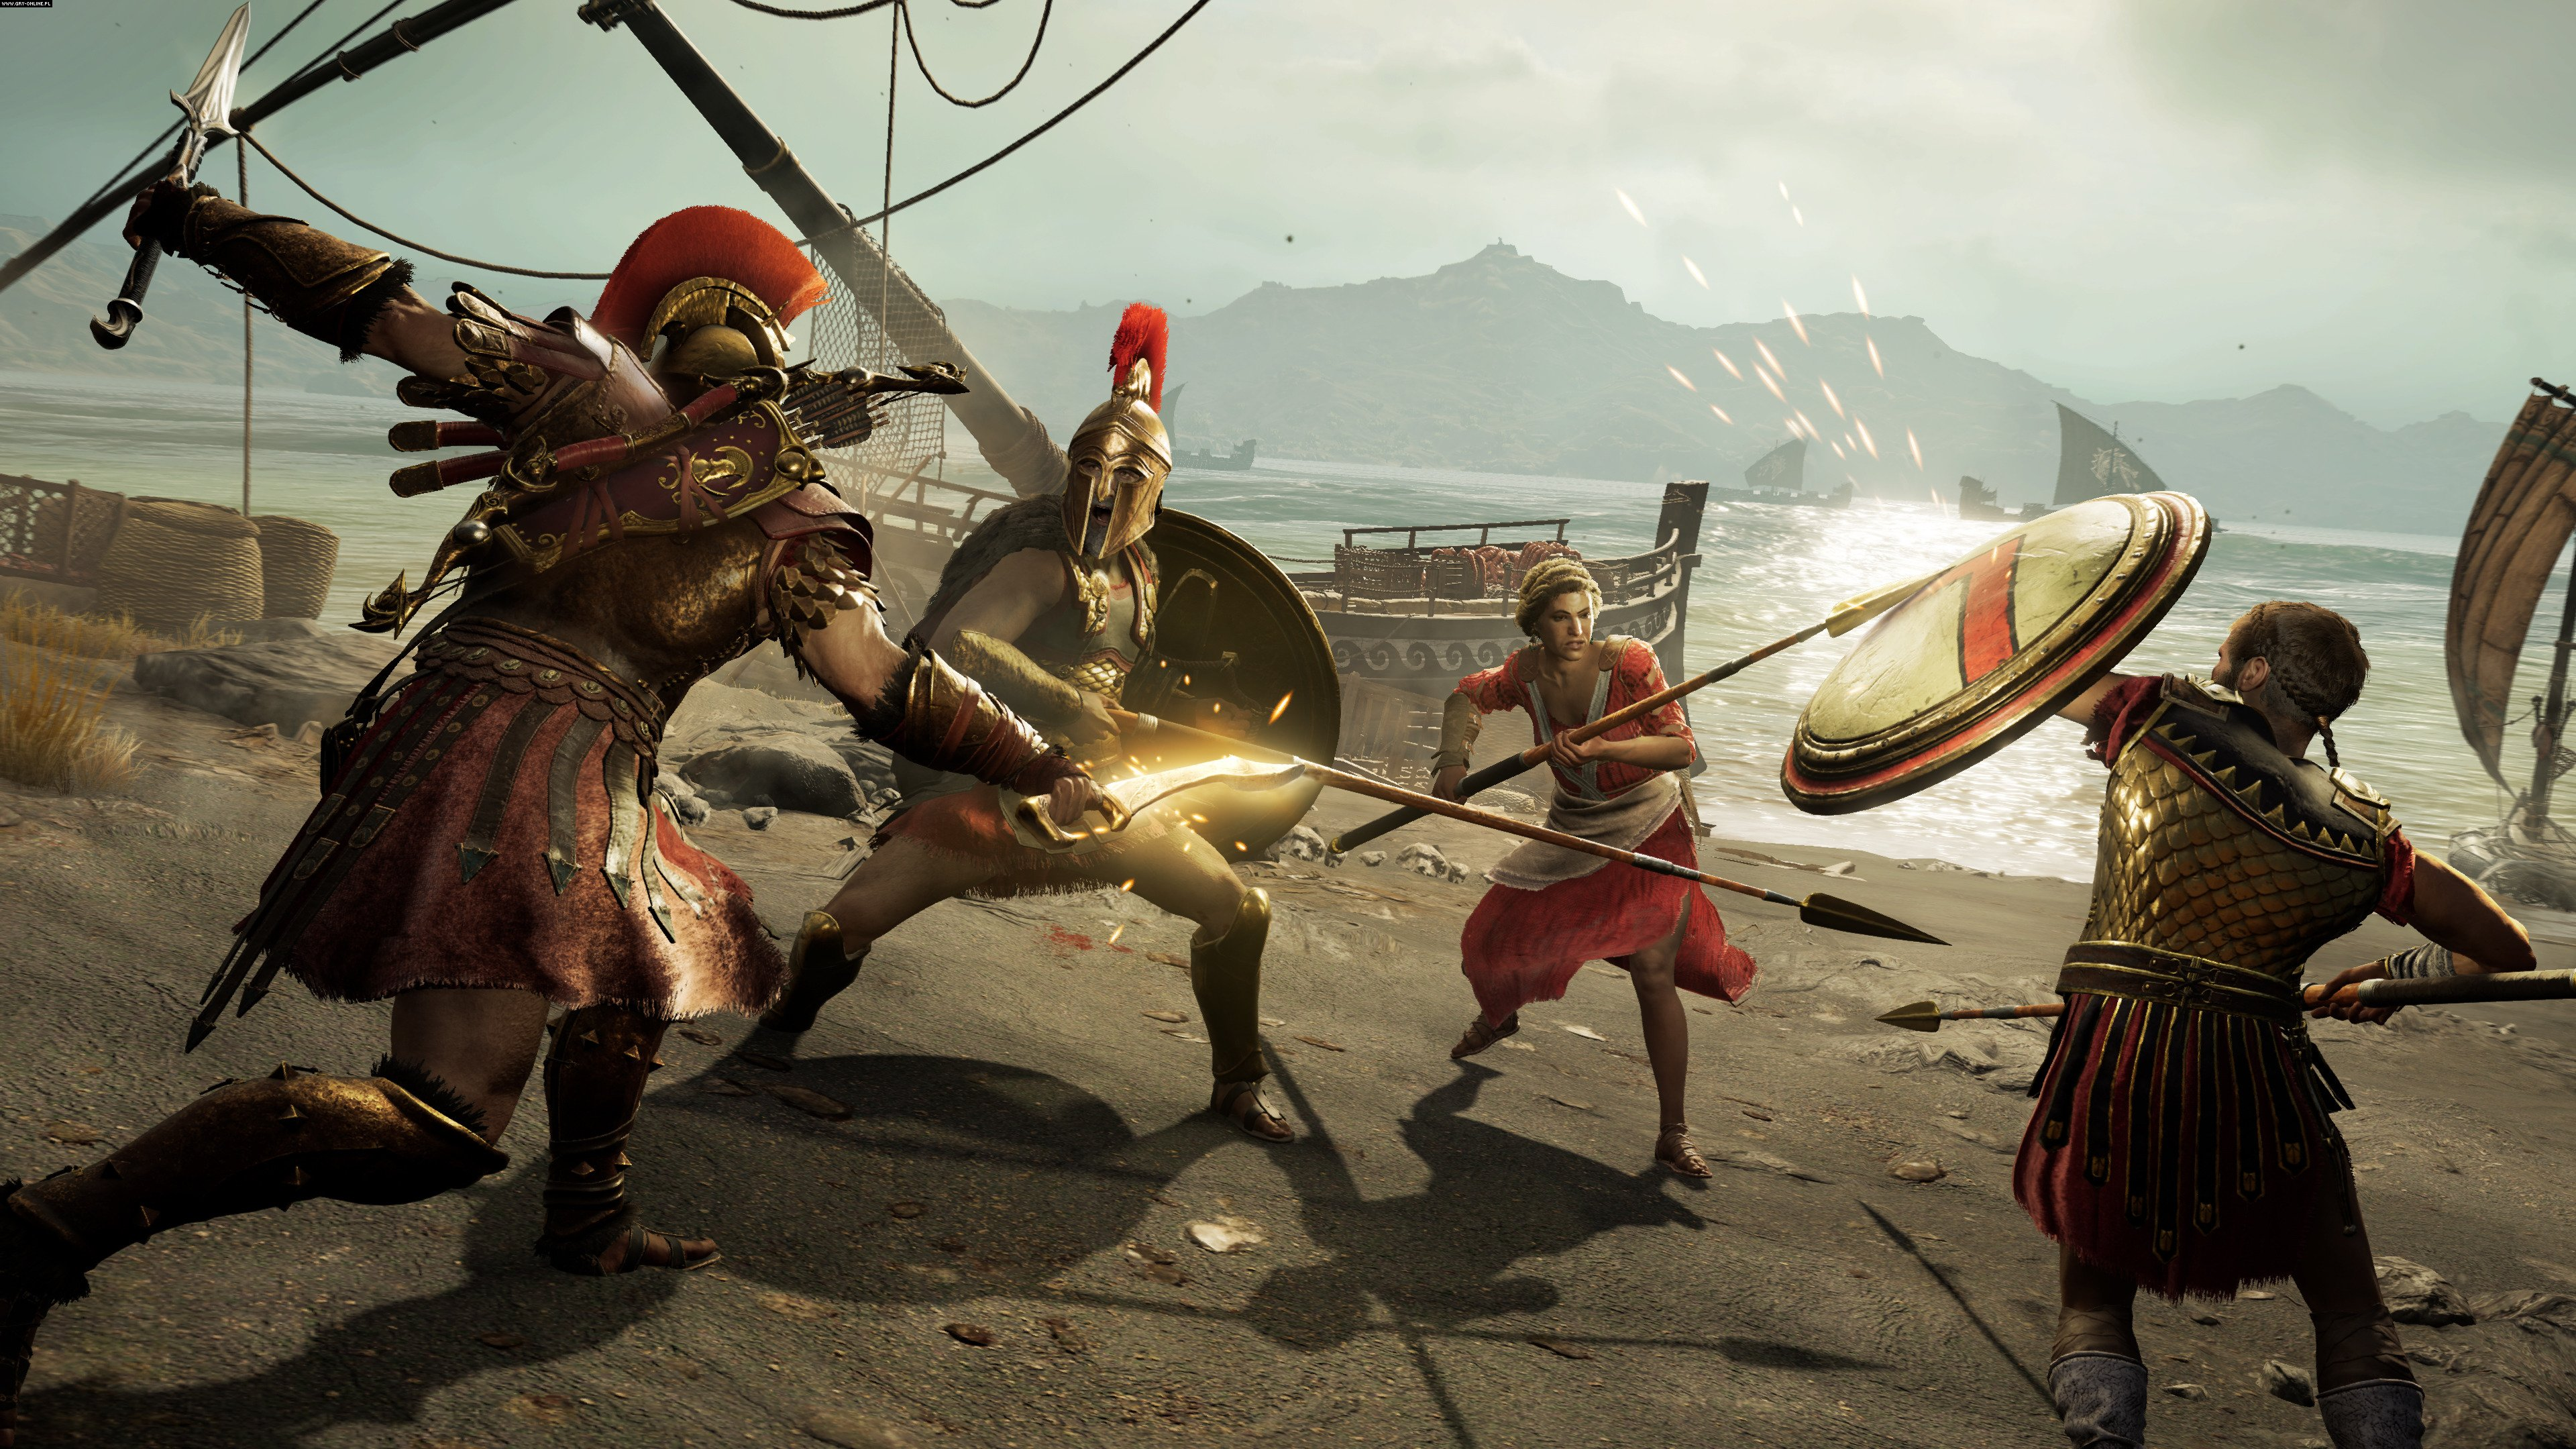 Assassin's Creed Odyssey PC, PS4, XONE Gry Screen 5/82, Ubisoft